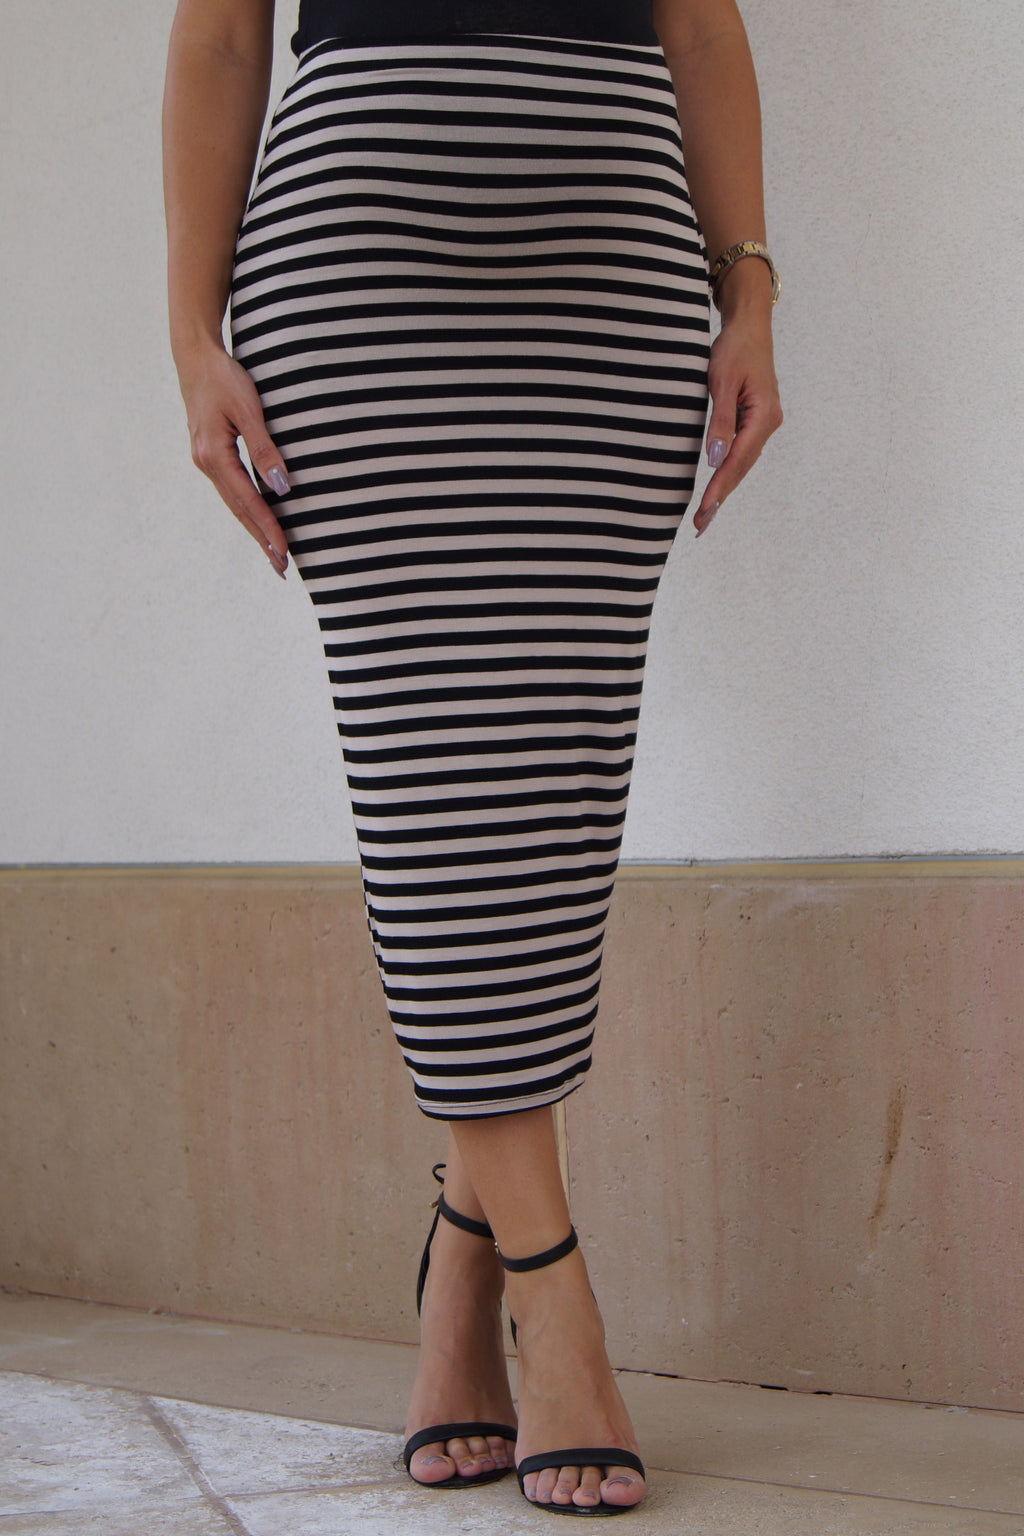 Striped Maternity Maxi Tube Skirt - Mommylicious